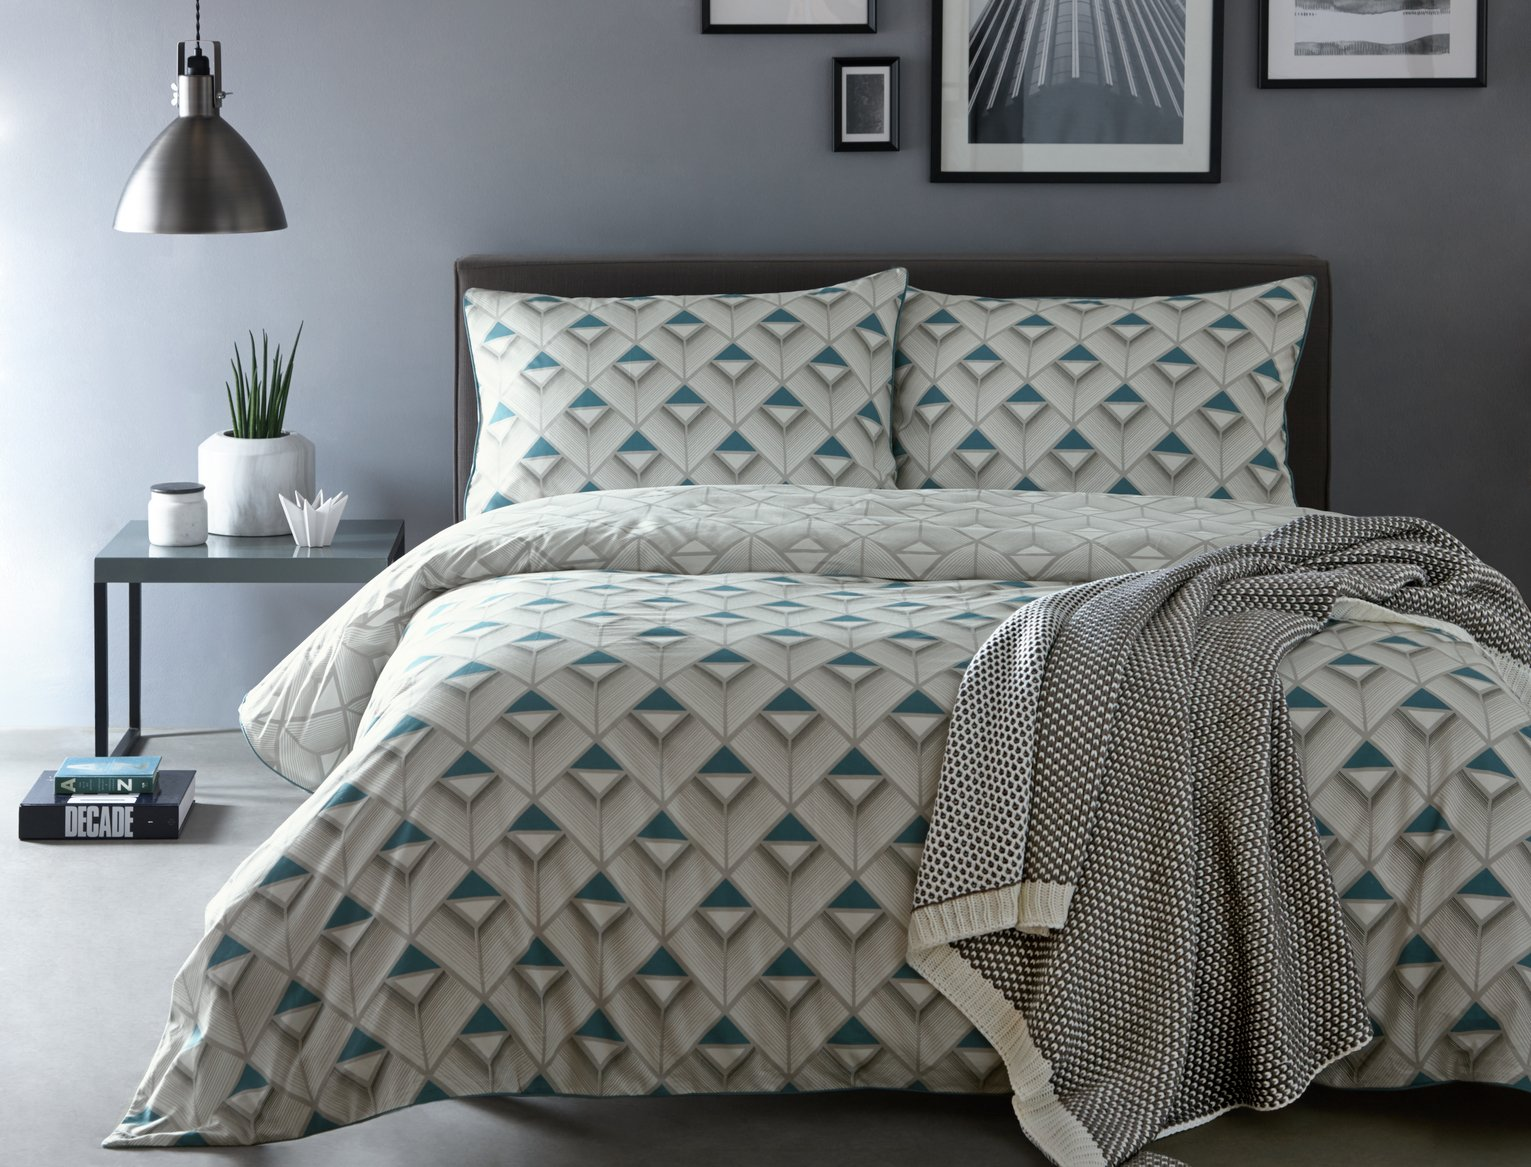 Image of Appletree Axis Blue Bedding Set - Double